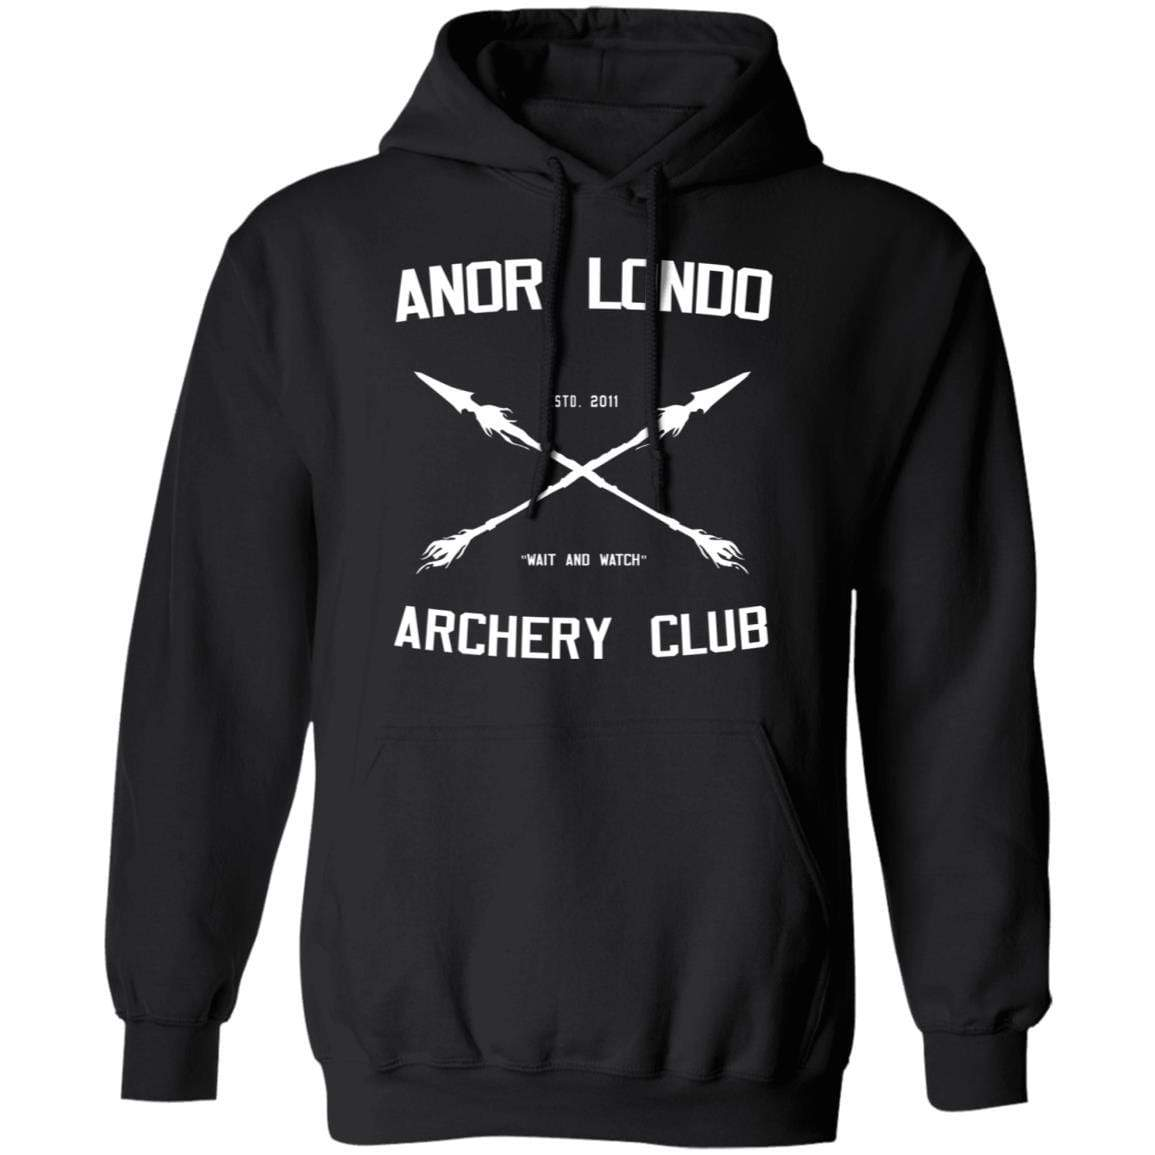 Anor Londo Archery Club 2011 T-Shirts, Hoodies 541-4740-88767424-23087 - Tee Ript